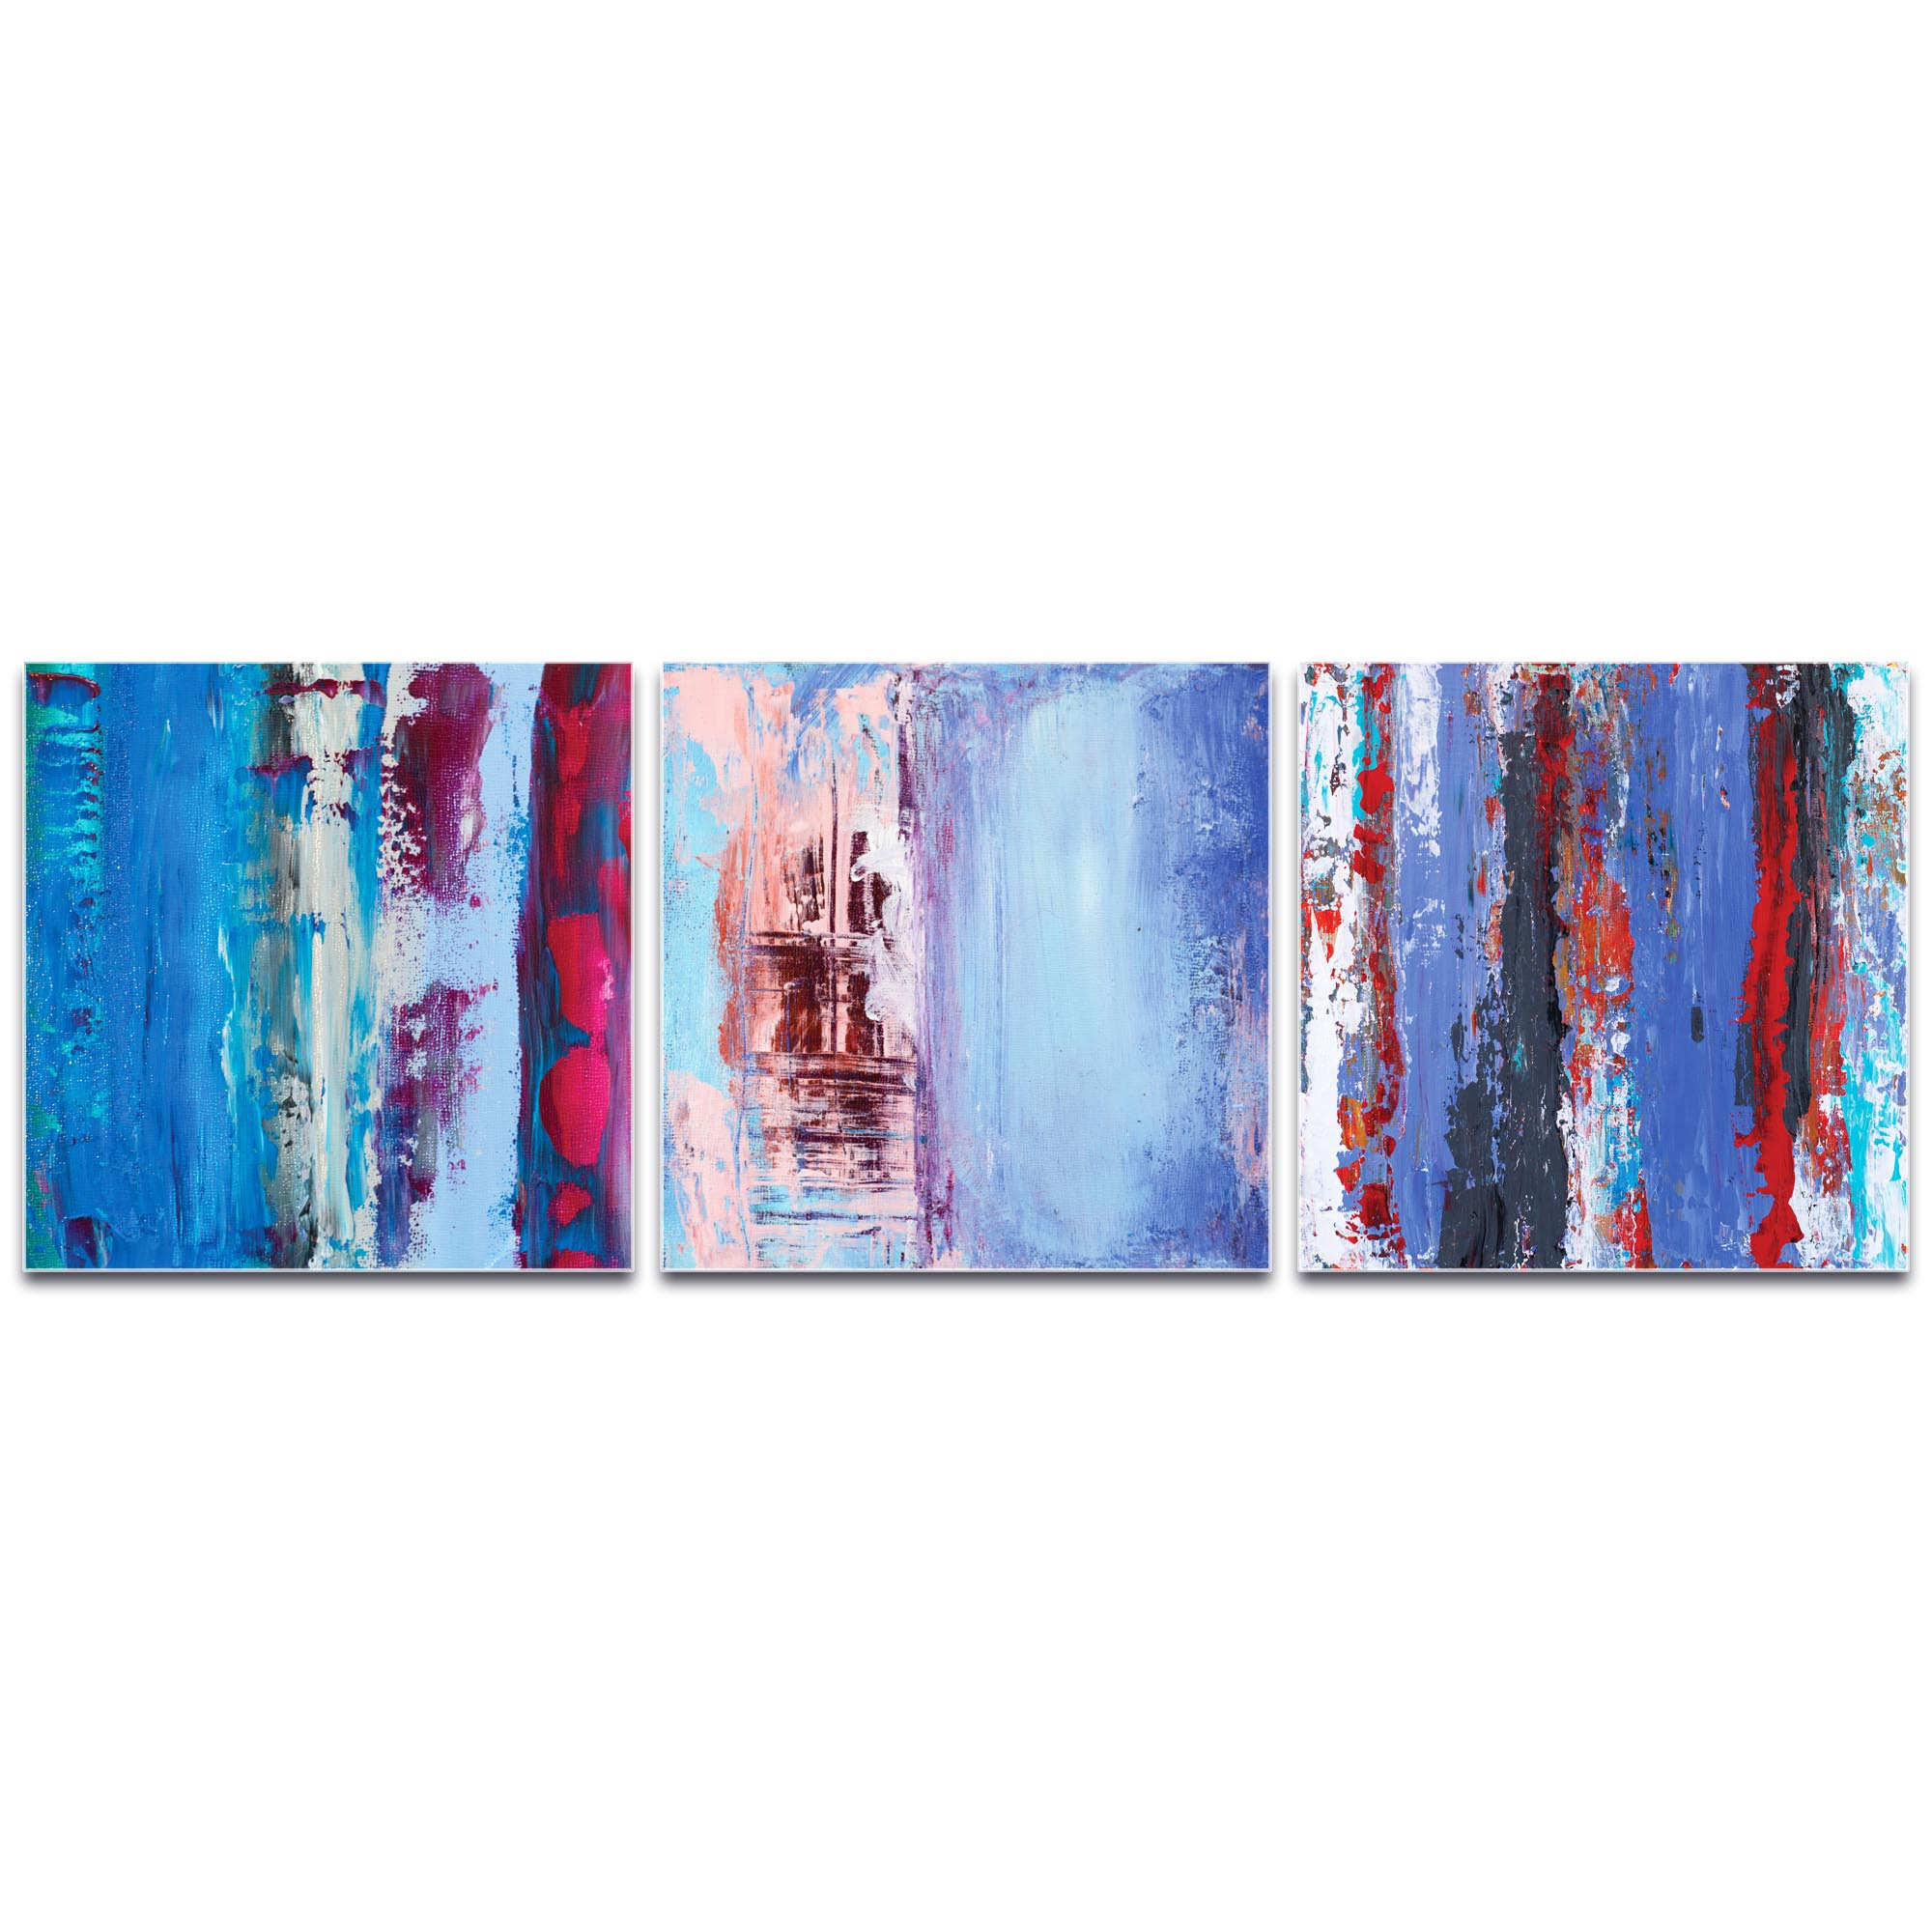 Abstract Wall Art 'Urban Triptych 1 Large' - Urban Decor on Metal or Plexiglass - Image 2